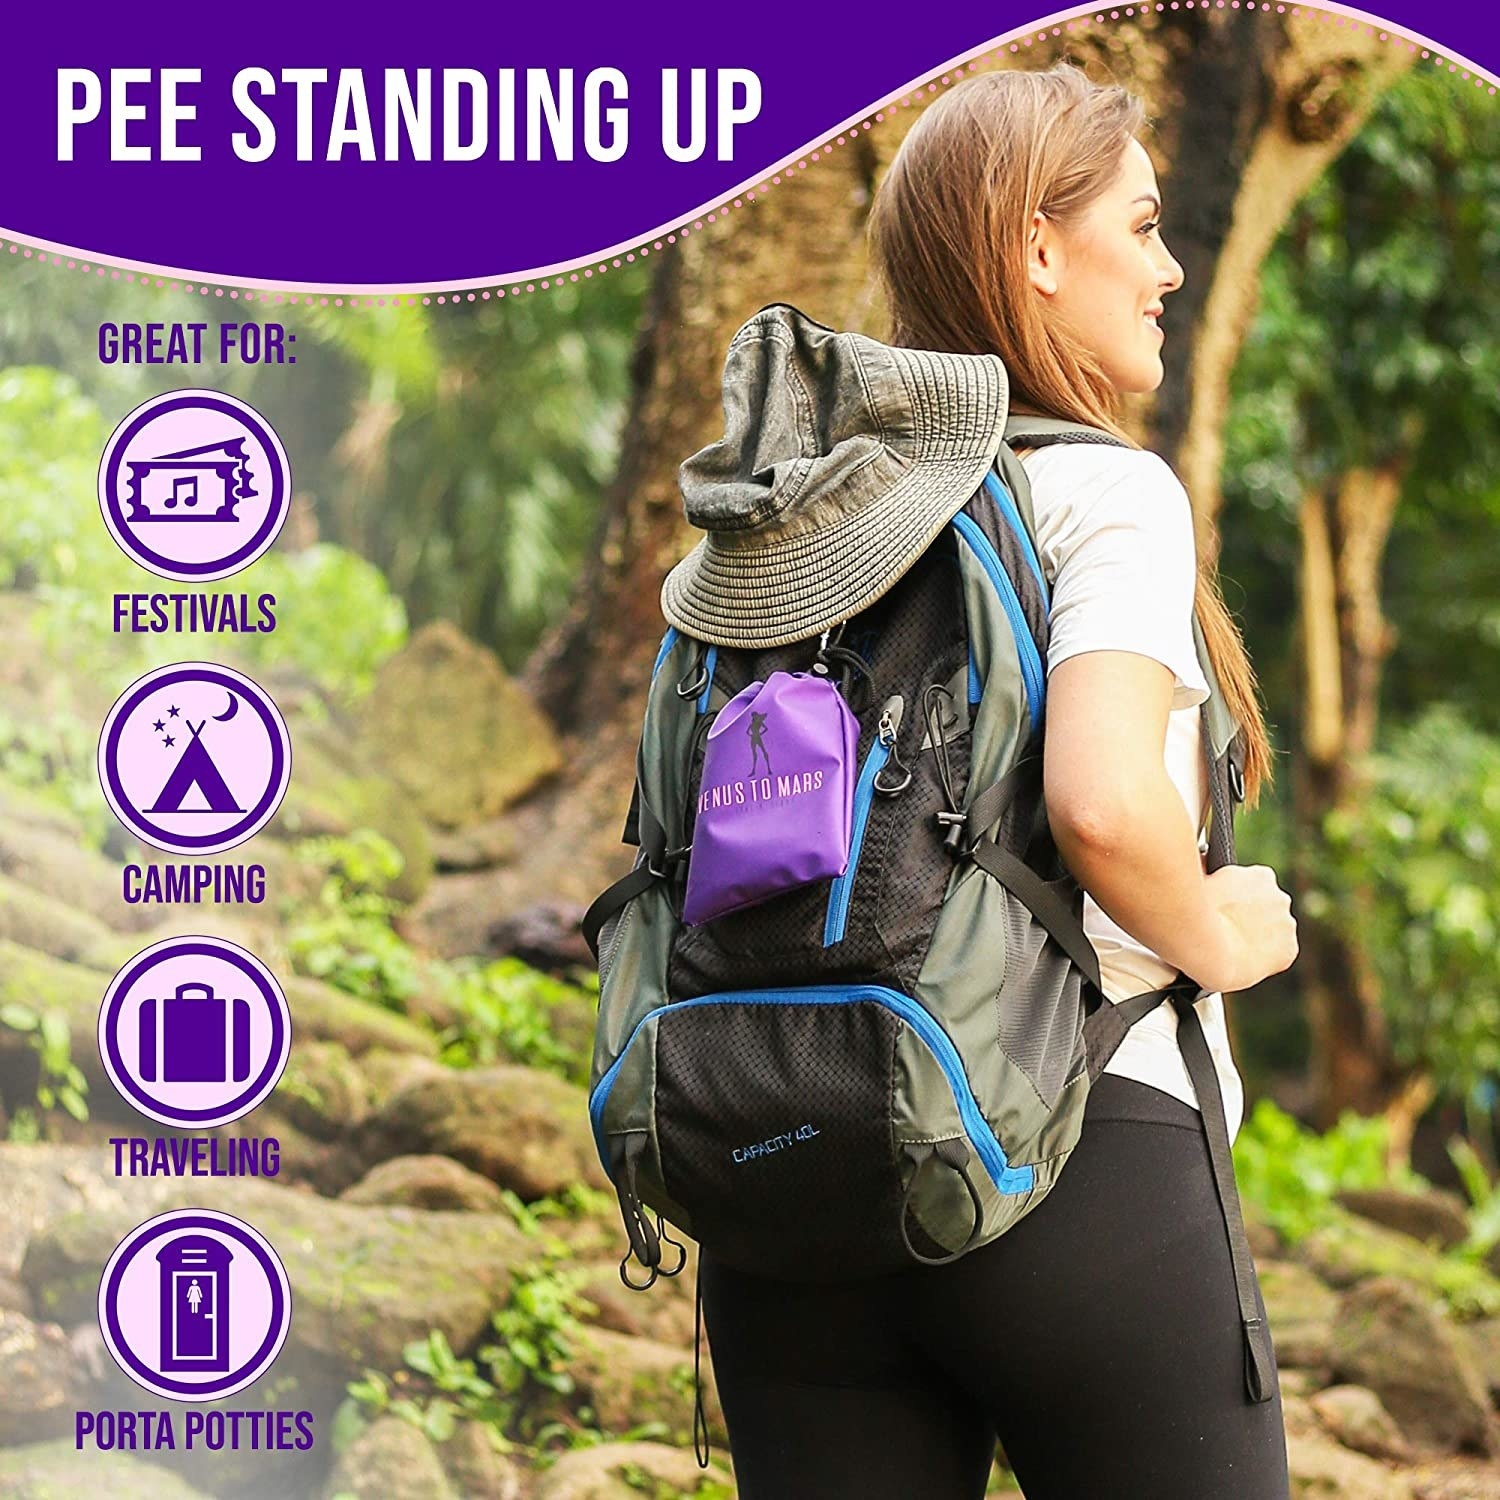 Model is hiking with the device in a pouch attached to their backpack